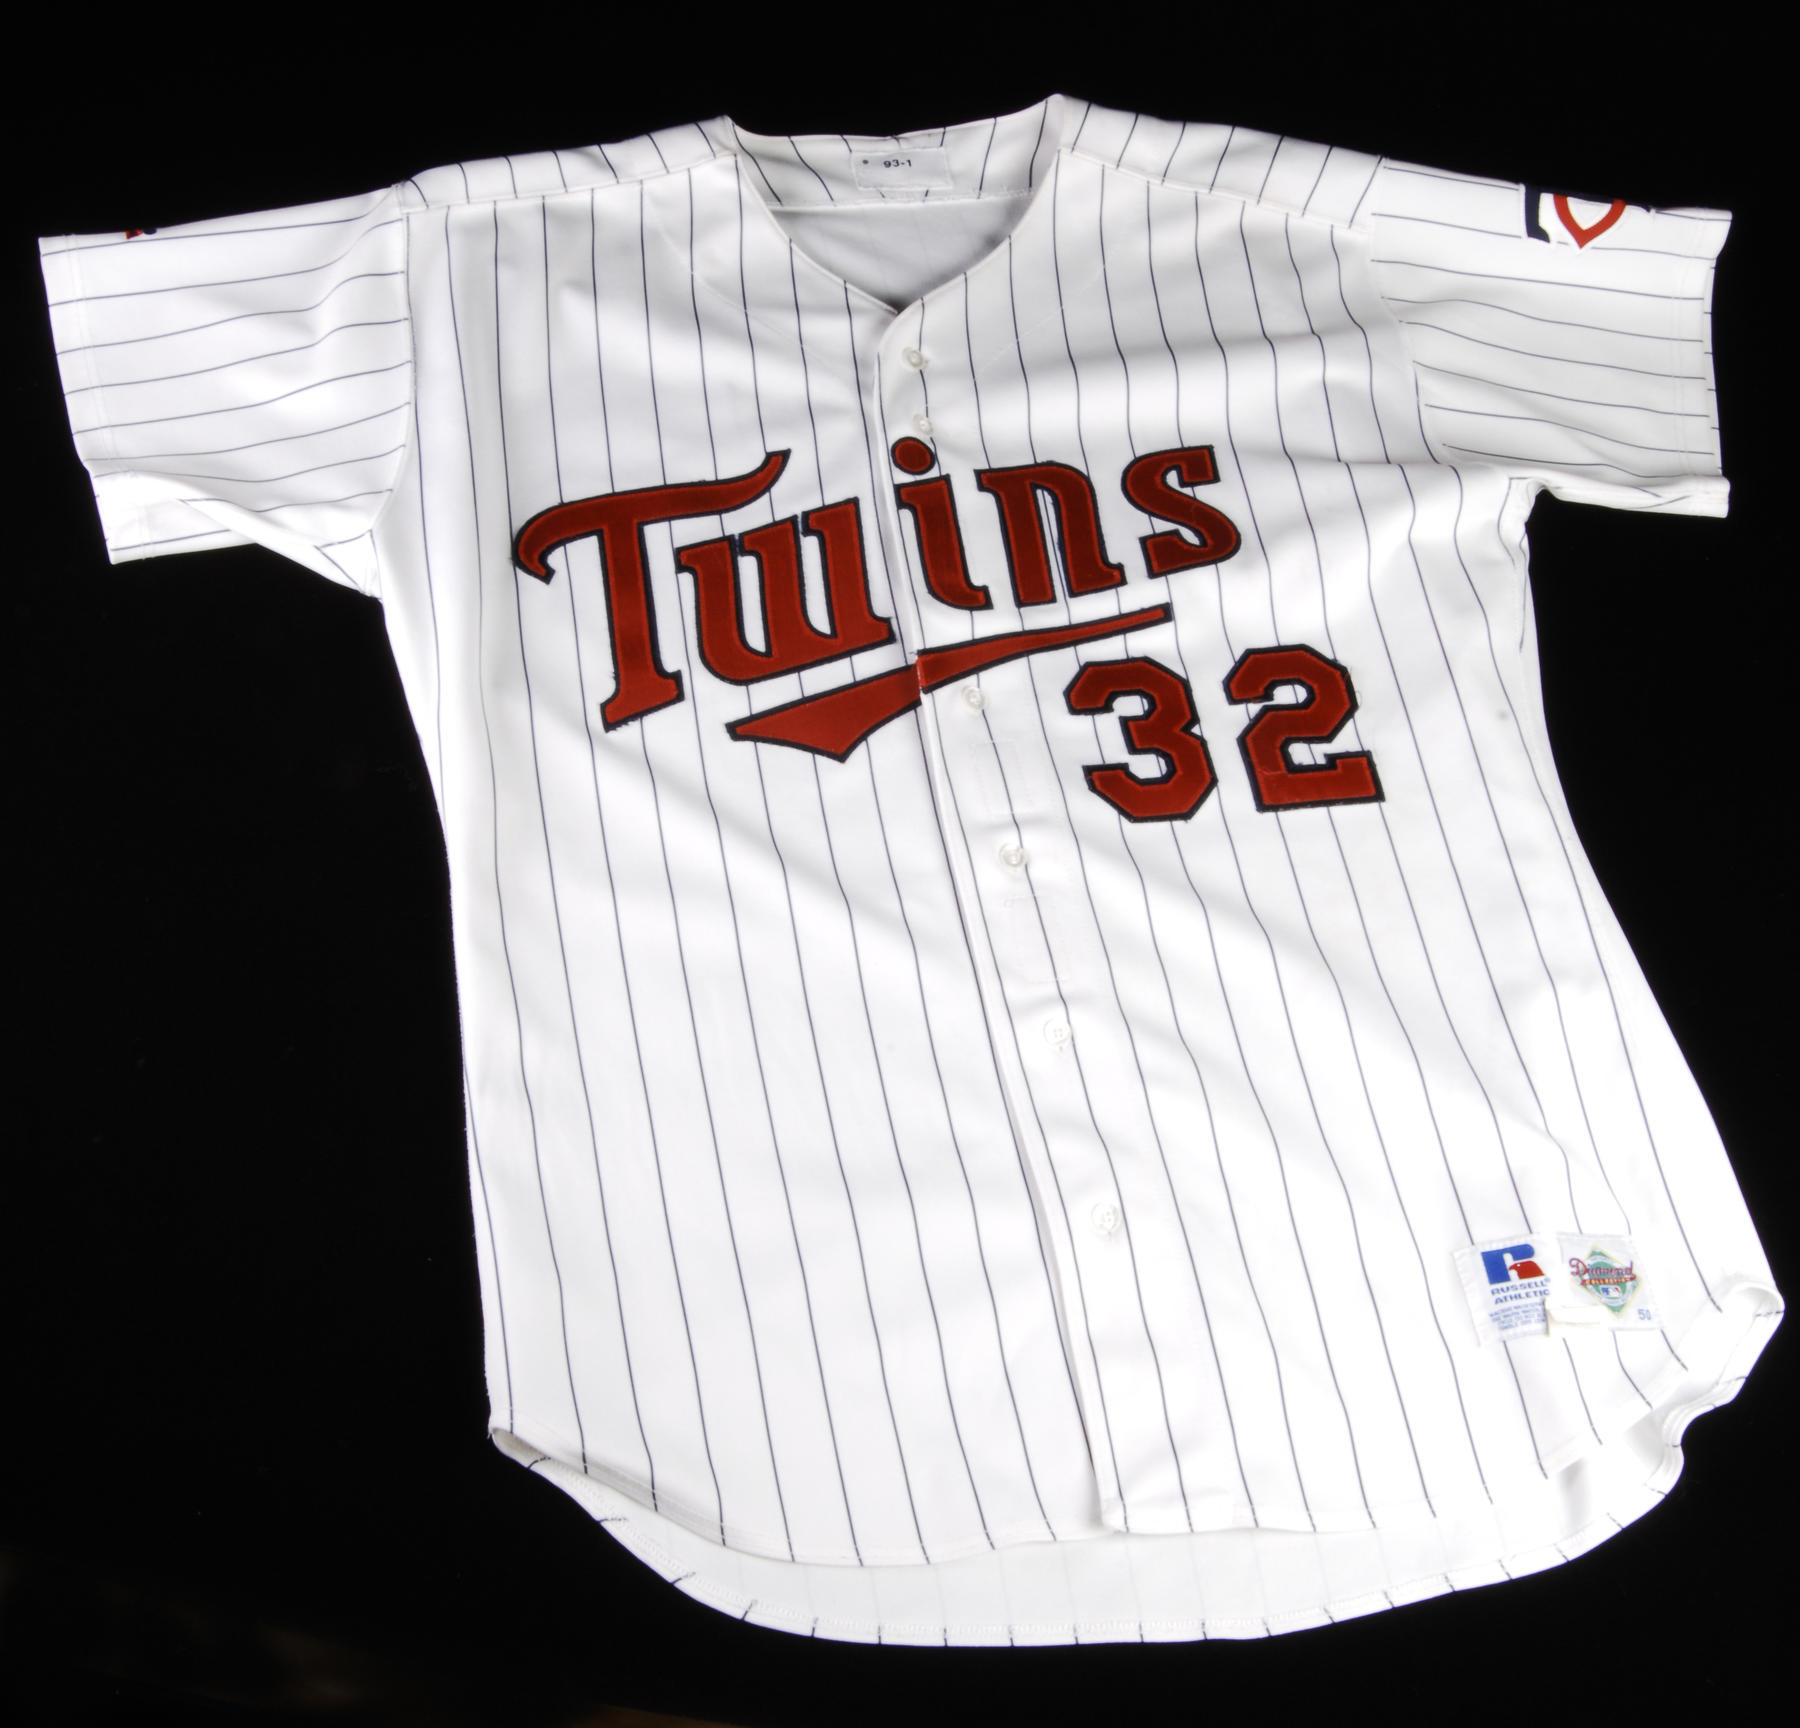 Dave Winfield wore this Twins jersey on Sept. 16, 1993 when he singled off the Athletics' Dennis Eckersley in the ninth inning for this 3,000th career hit. Winfield became just the 19th player to reach the 3,000-hit mark. - B-3-94 (Milo Stewart, Jr. / National Baseball Hall of Fame)